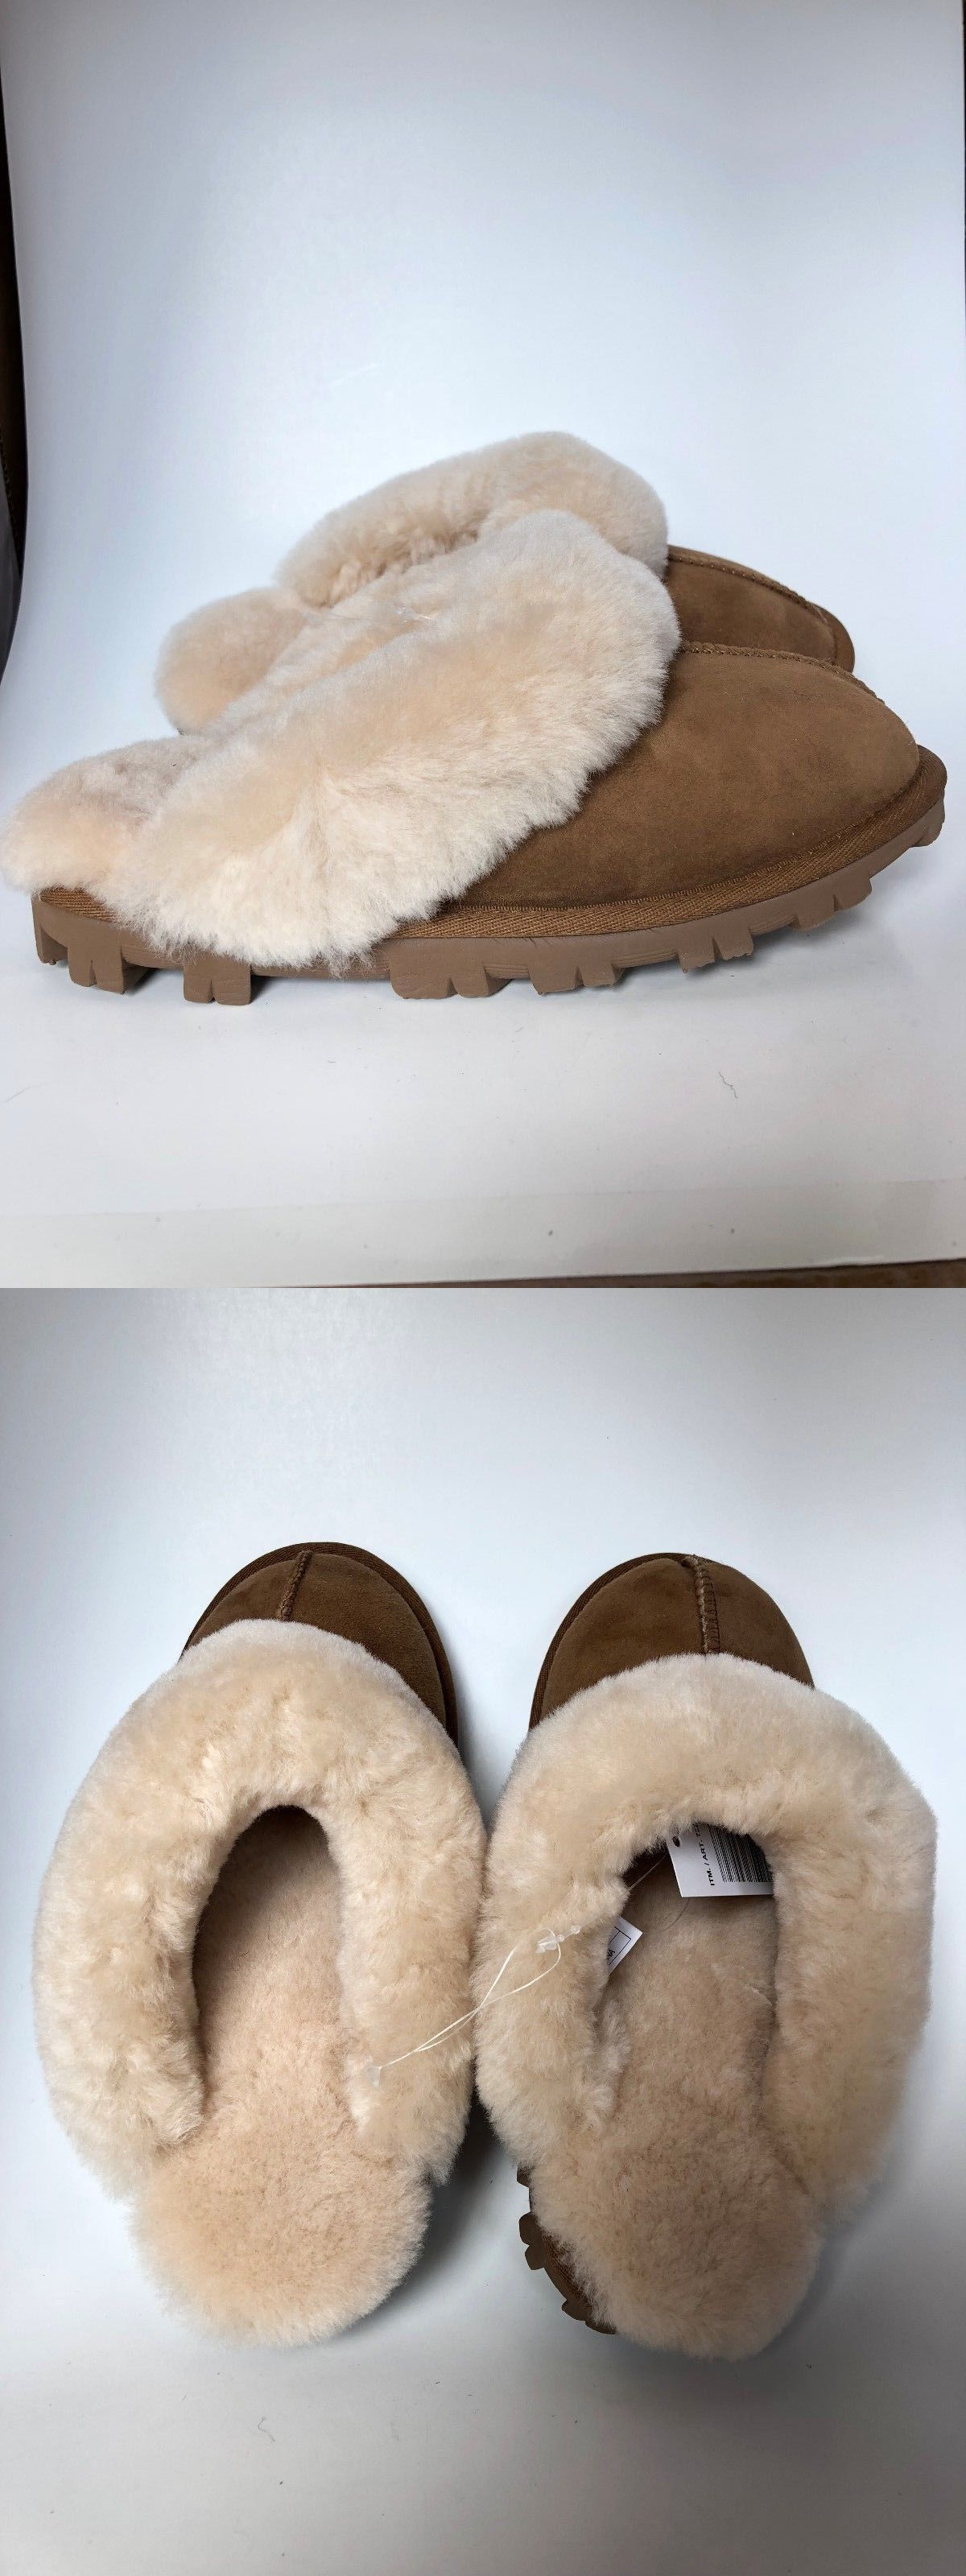 50abe5cce0c Slippers 11632: New Kirkland Signature Ladies Shearling Slipper ...